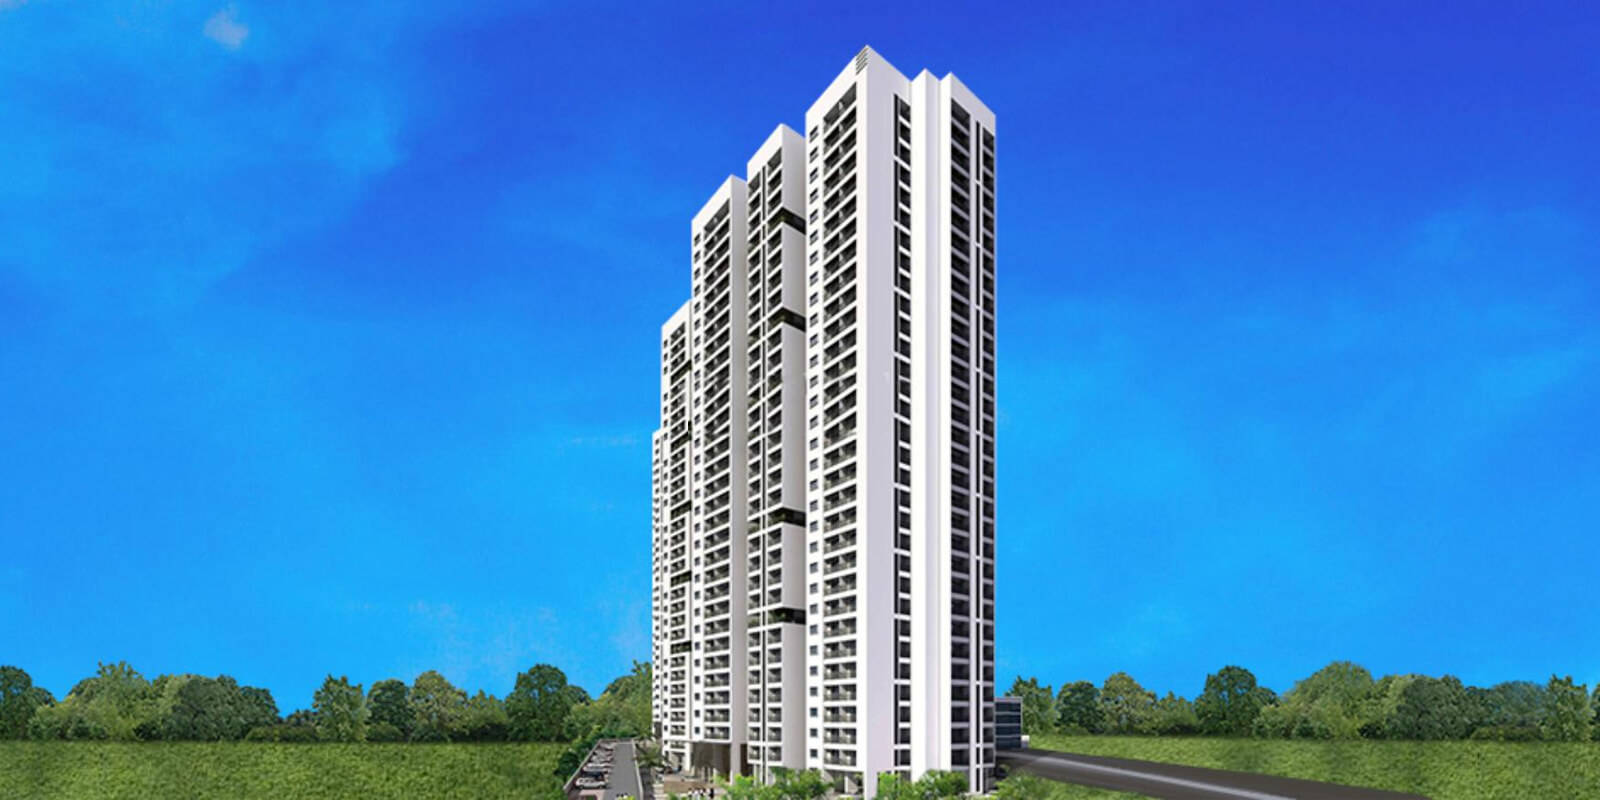 lodha meridian project large image1